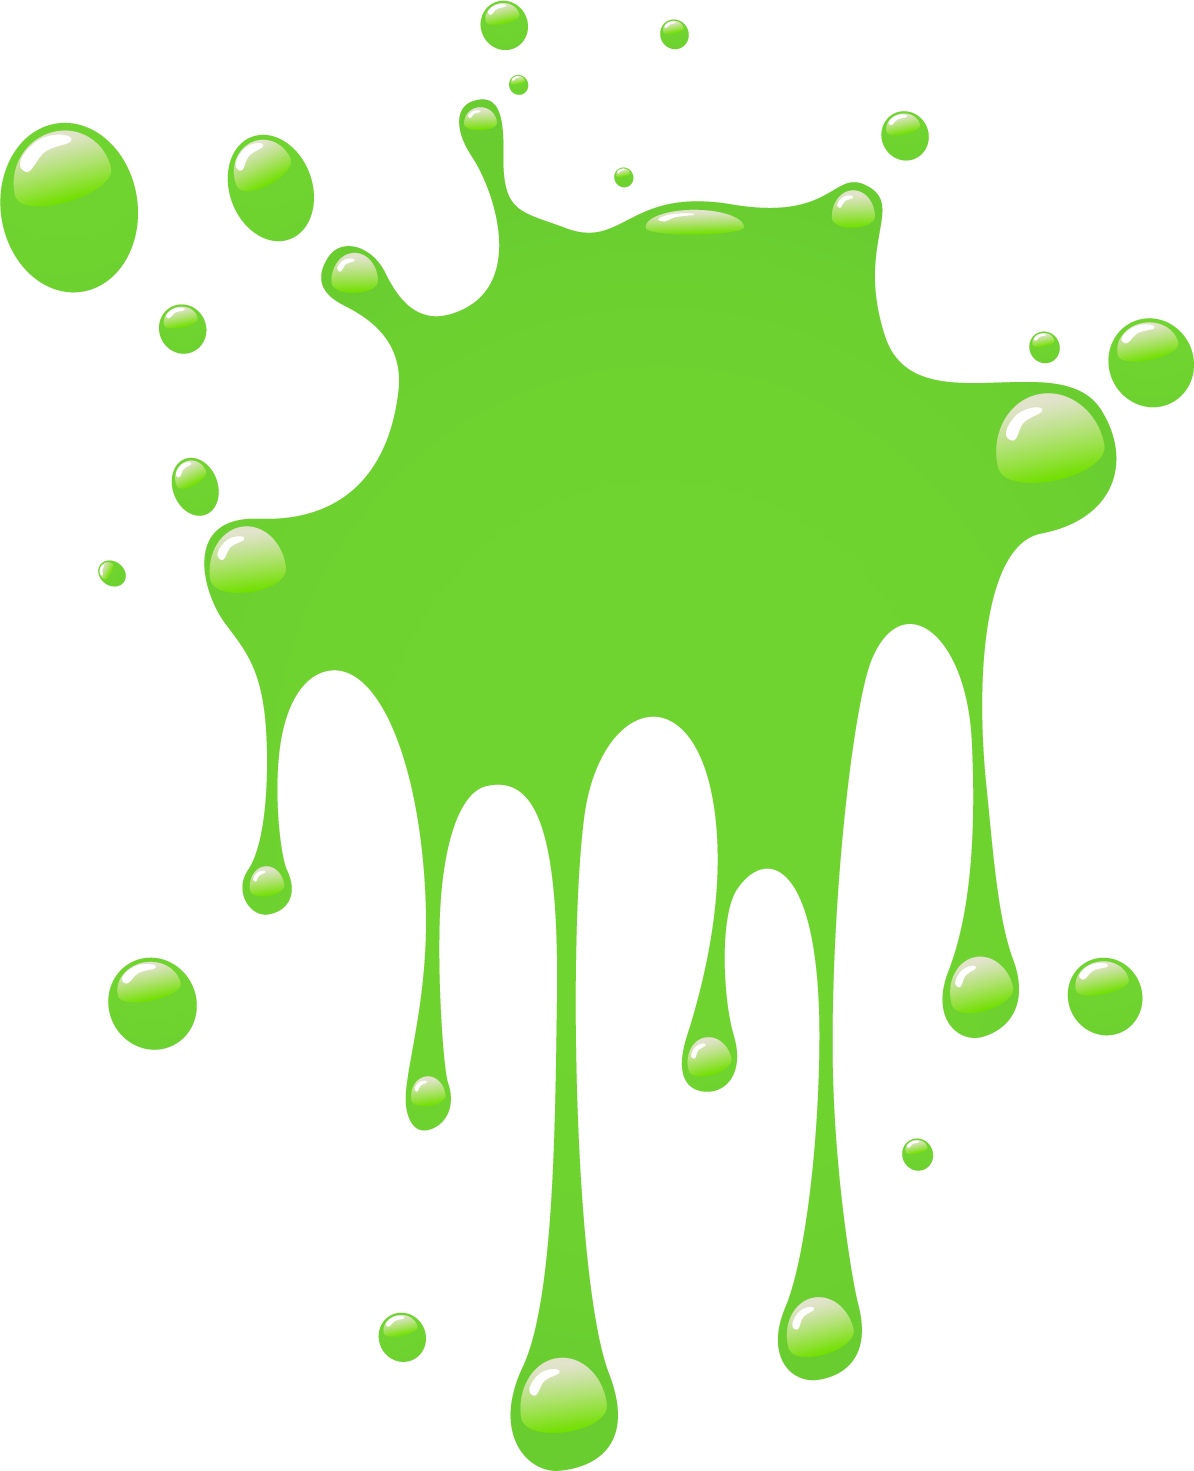 slime clipart cliparts co farby pinterest slime clip art rh pinterest com slime border clipart slime clipart black and white